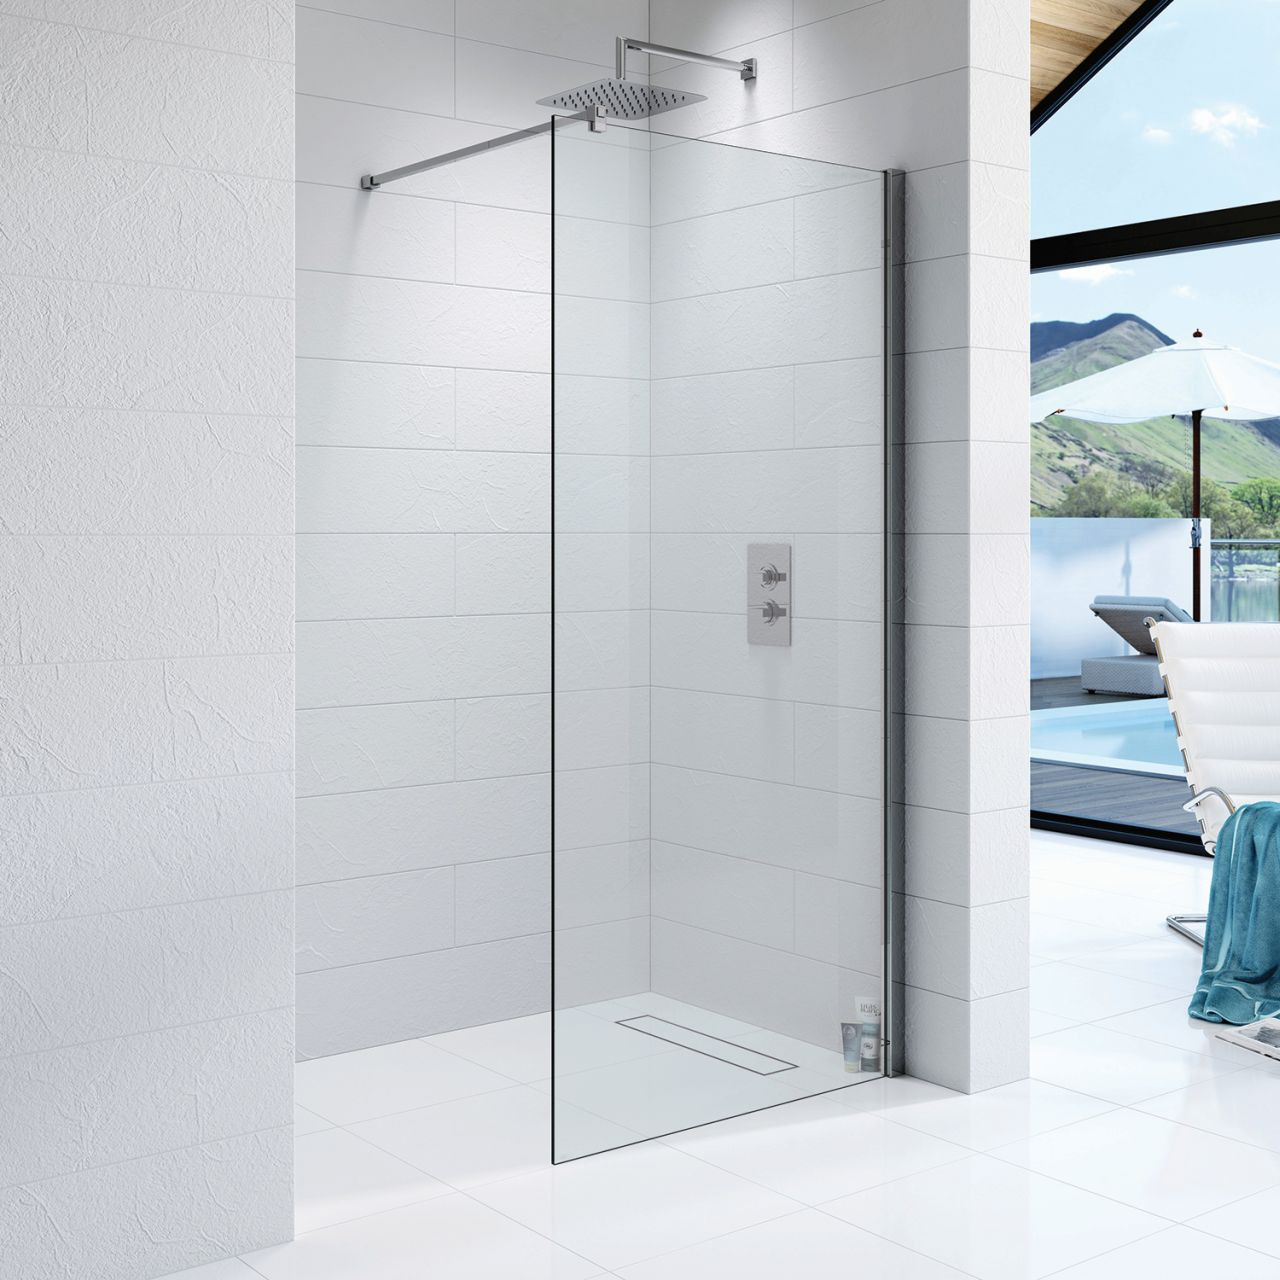 Kudos Ultimate 10mm 1200mm x 700mm Complete Recess Walk In Shower Enclosure - 10WIR1270